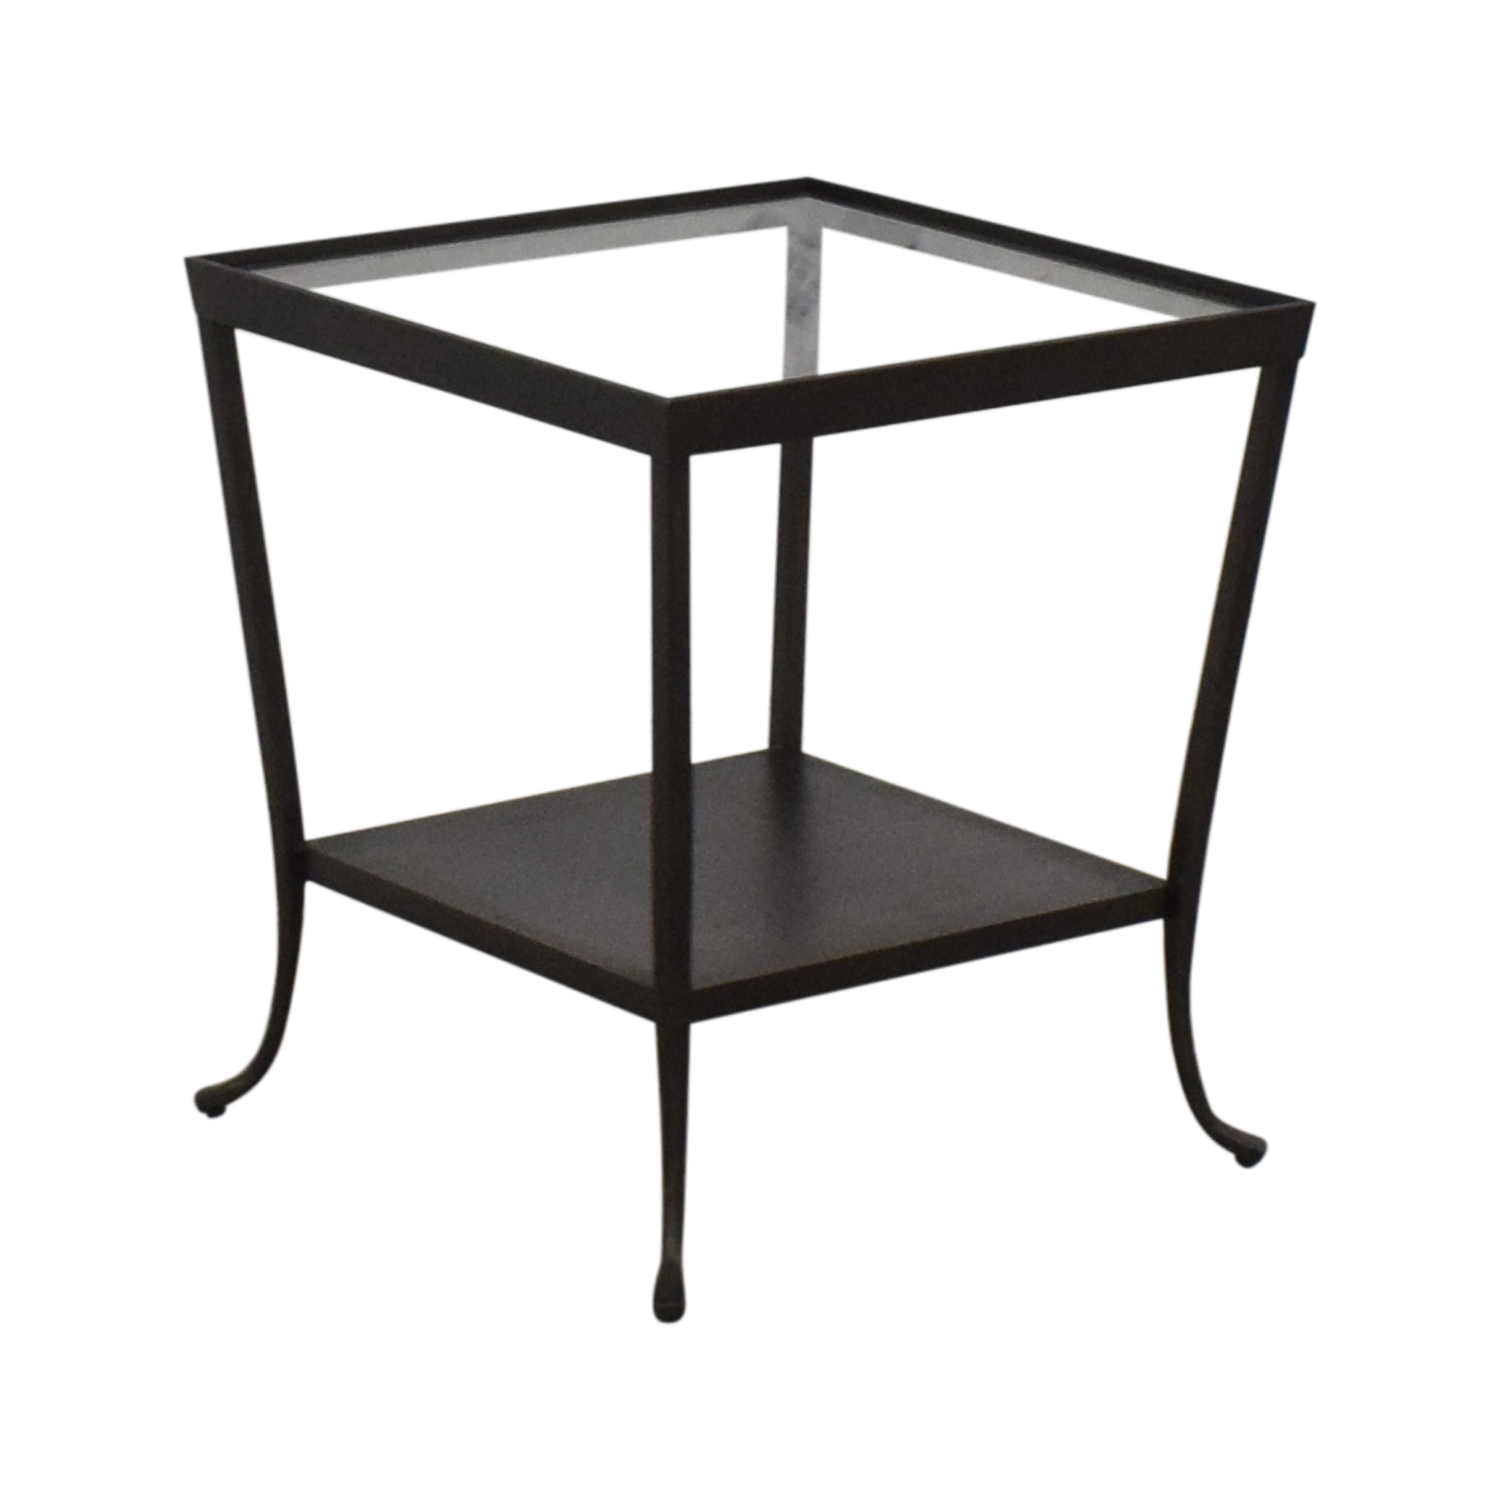 Crate & Barrel Crate & Barrel Square Glass & Metal Accent End Table coupon